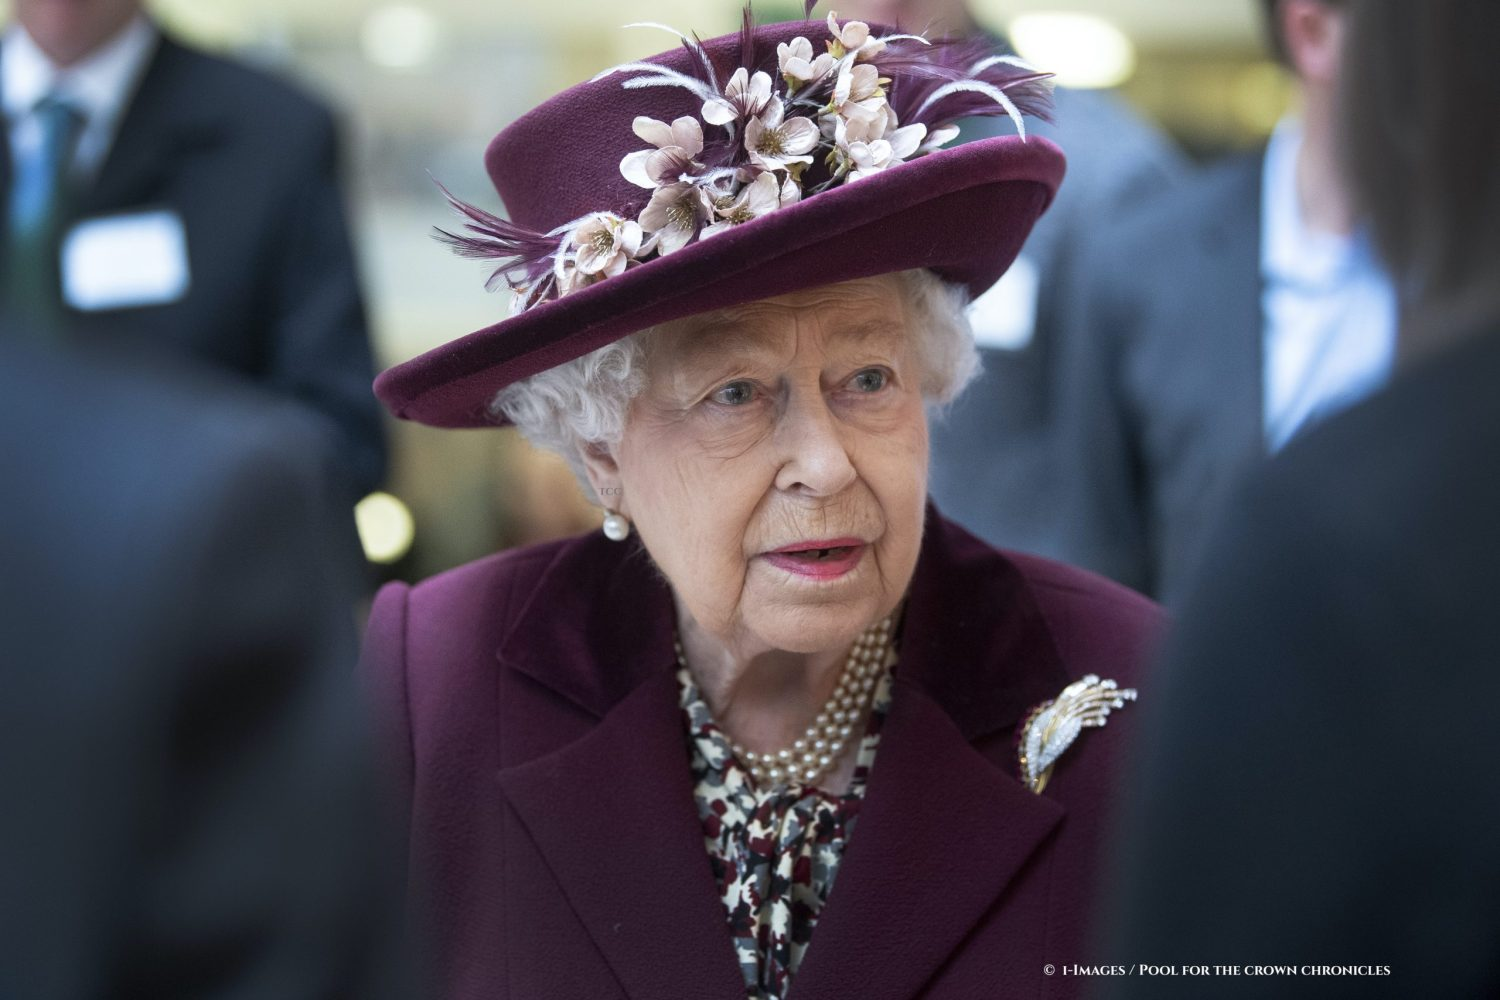 Queen Elizabeth II during a visit at the headquarters of MI5, the UK's domestic counter-intelligence and security agency Picture by  i-Images / Pool